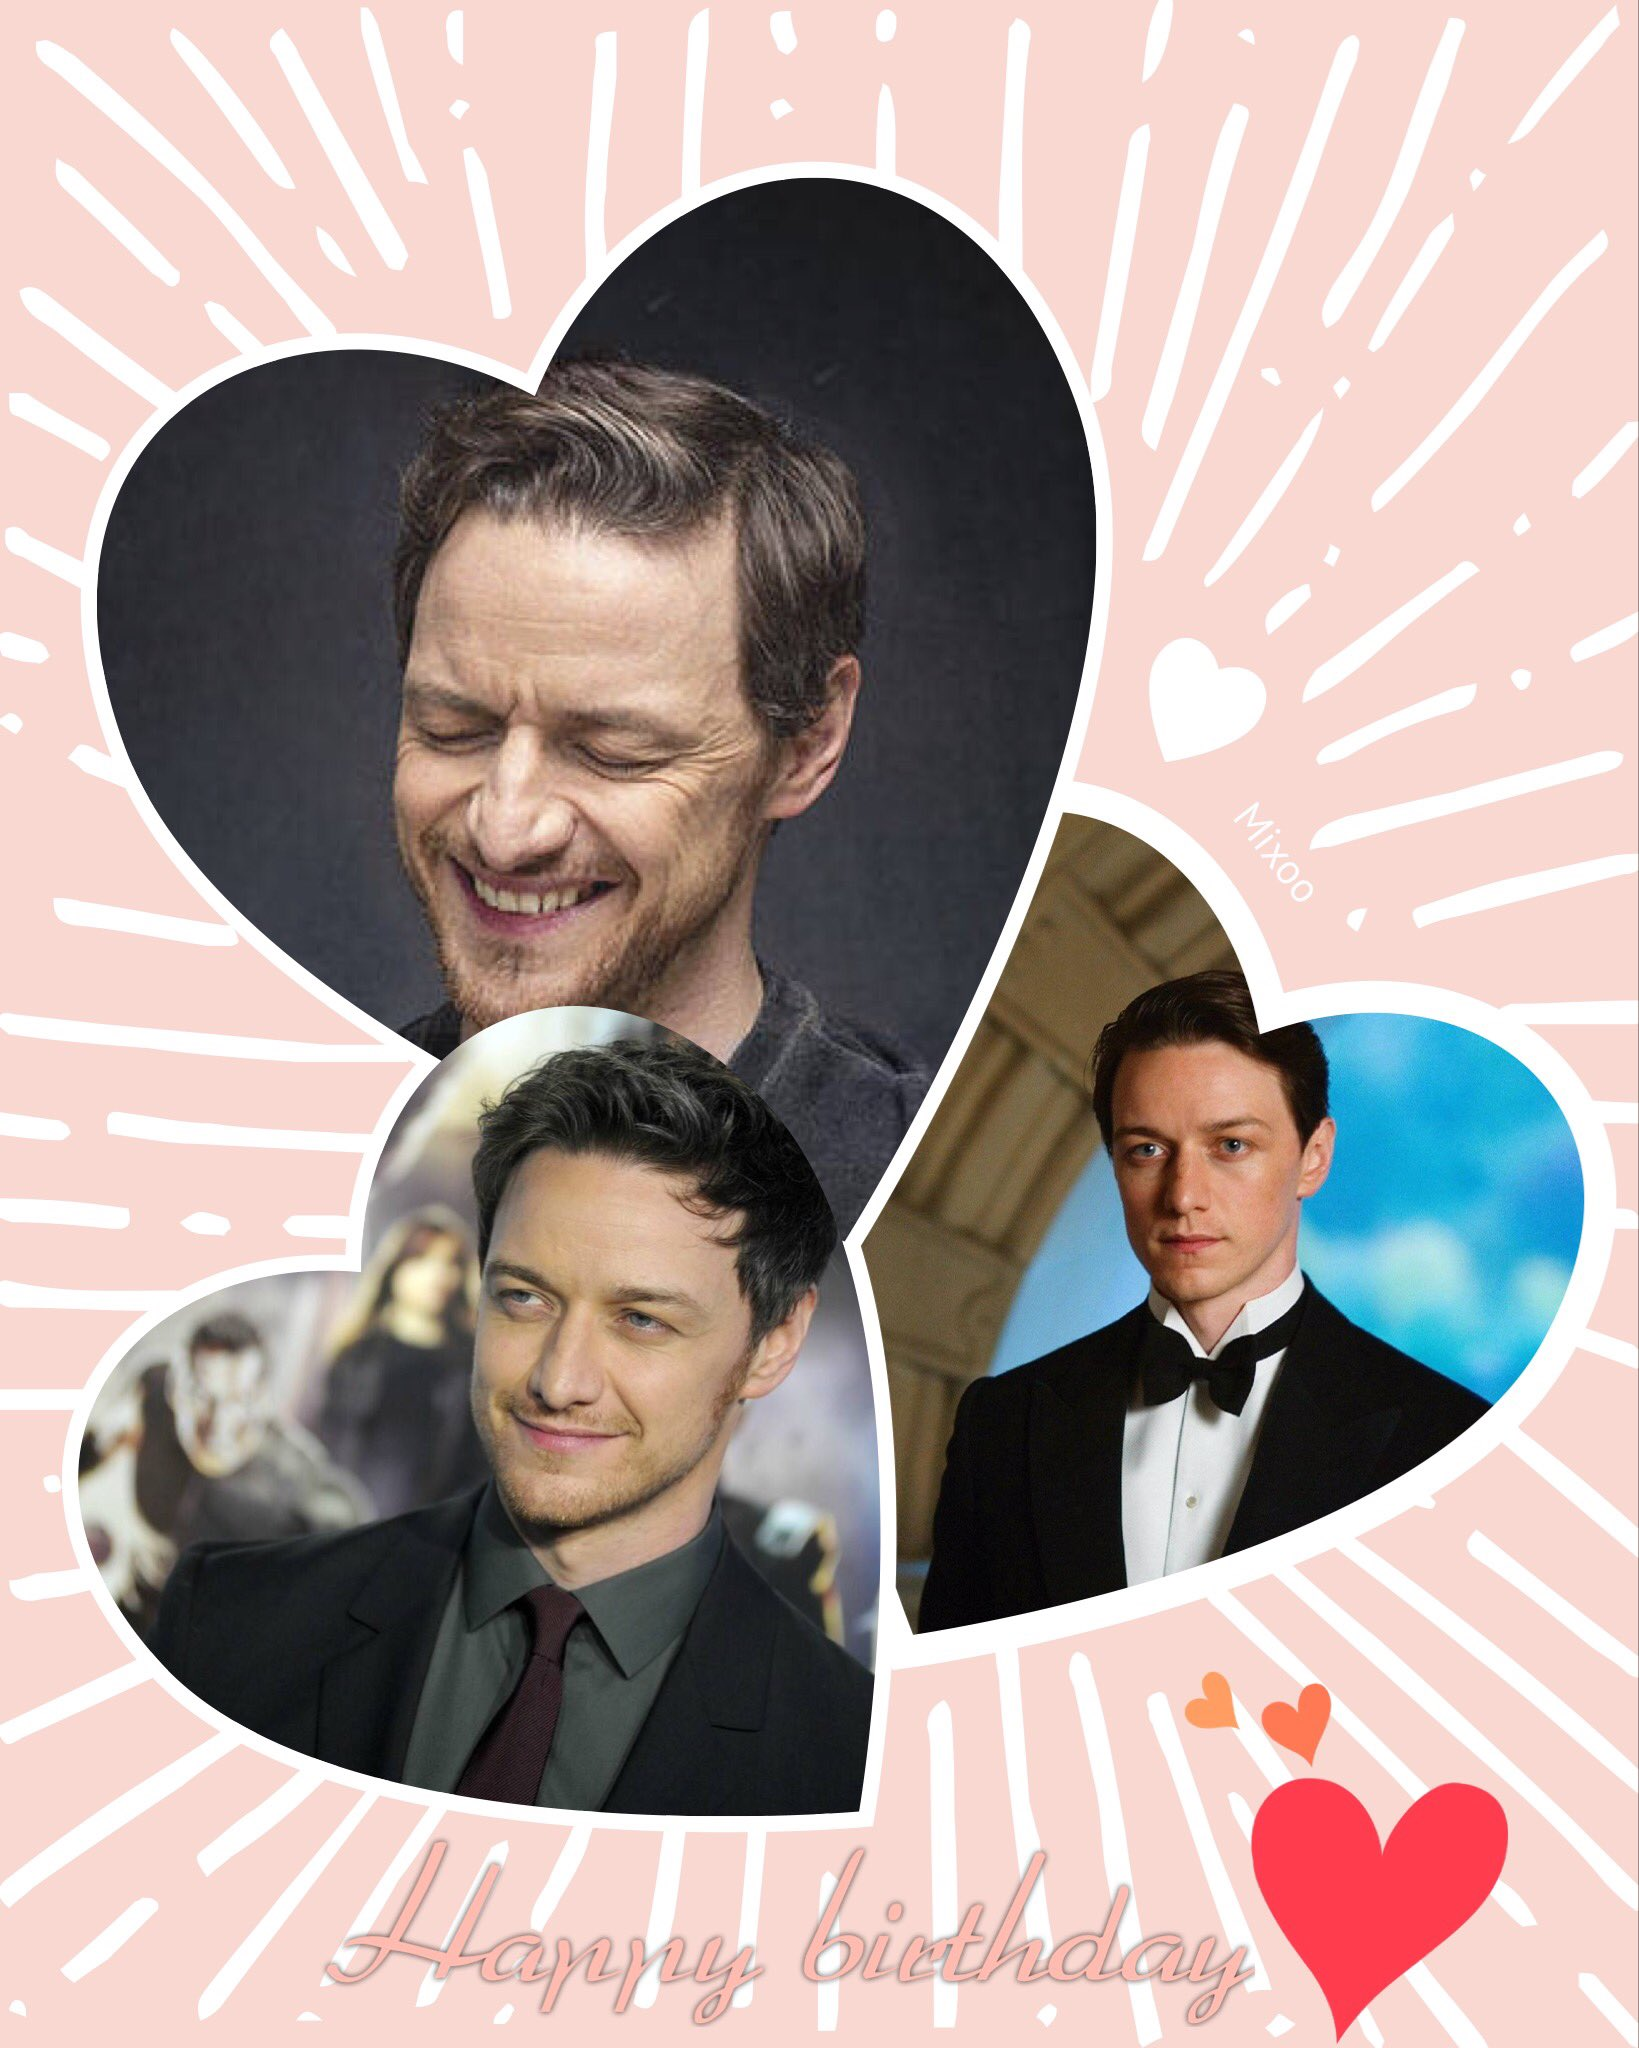 Happy birthday to James McAvoy